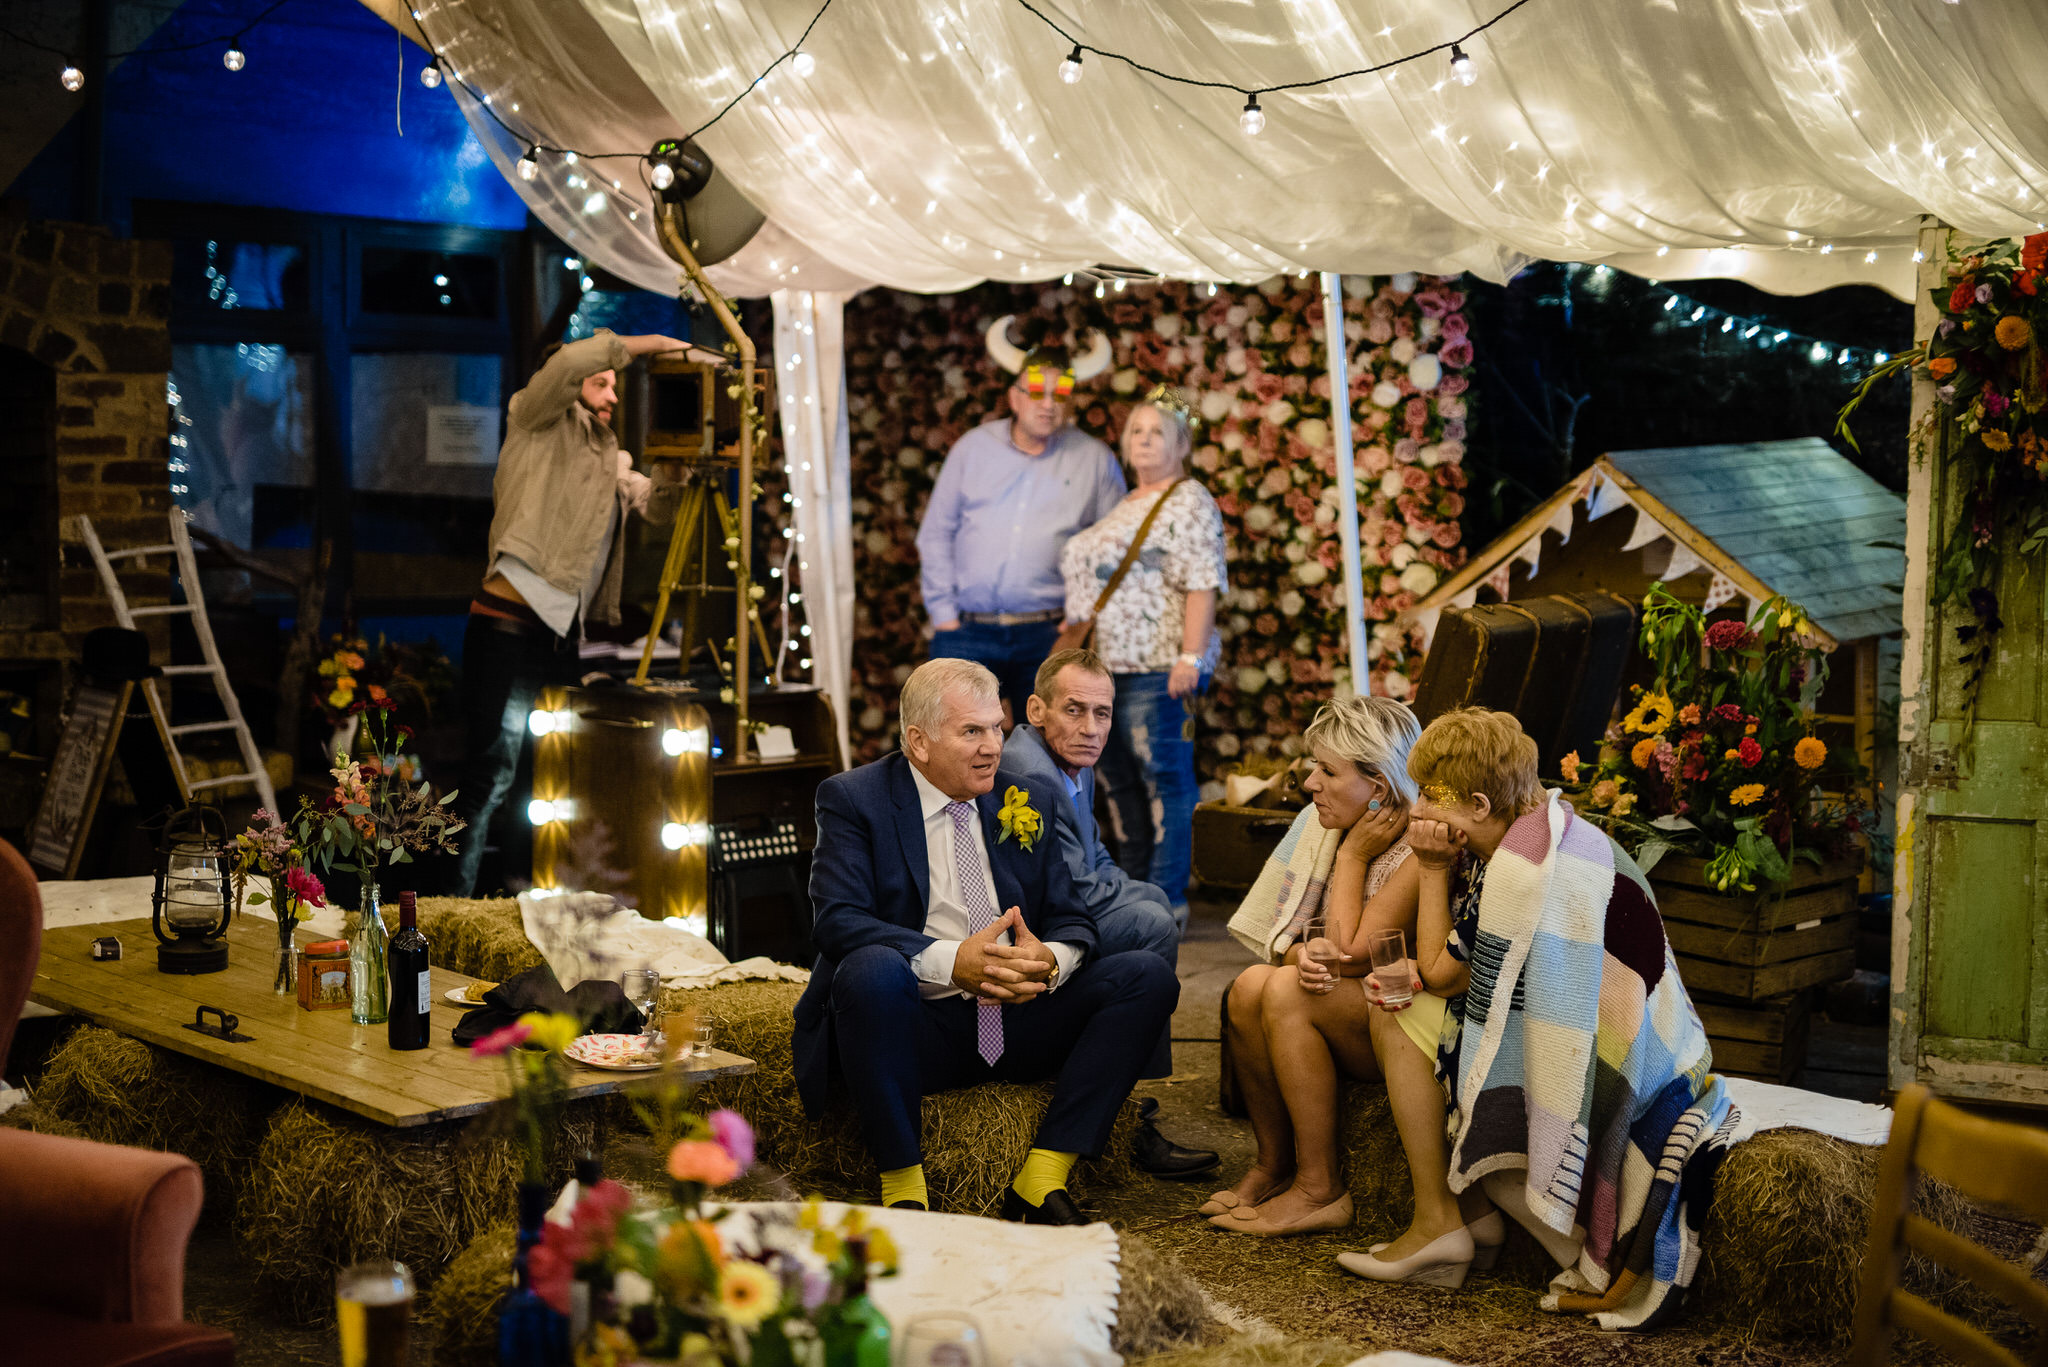 Hagglers corner sheffield wedding by simon biffen 68